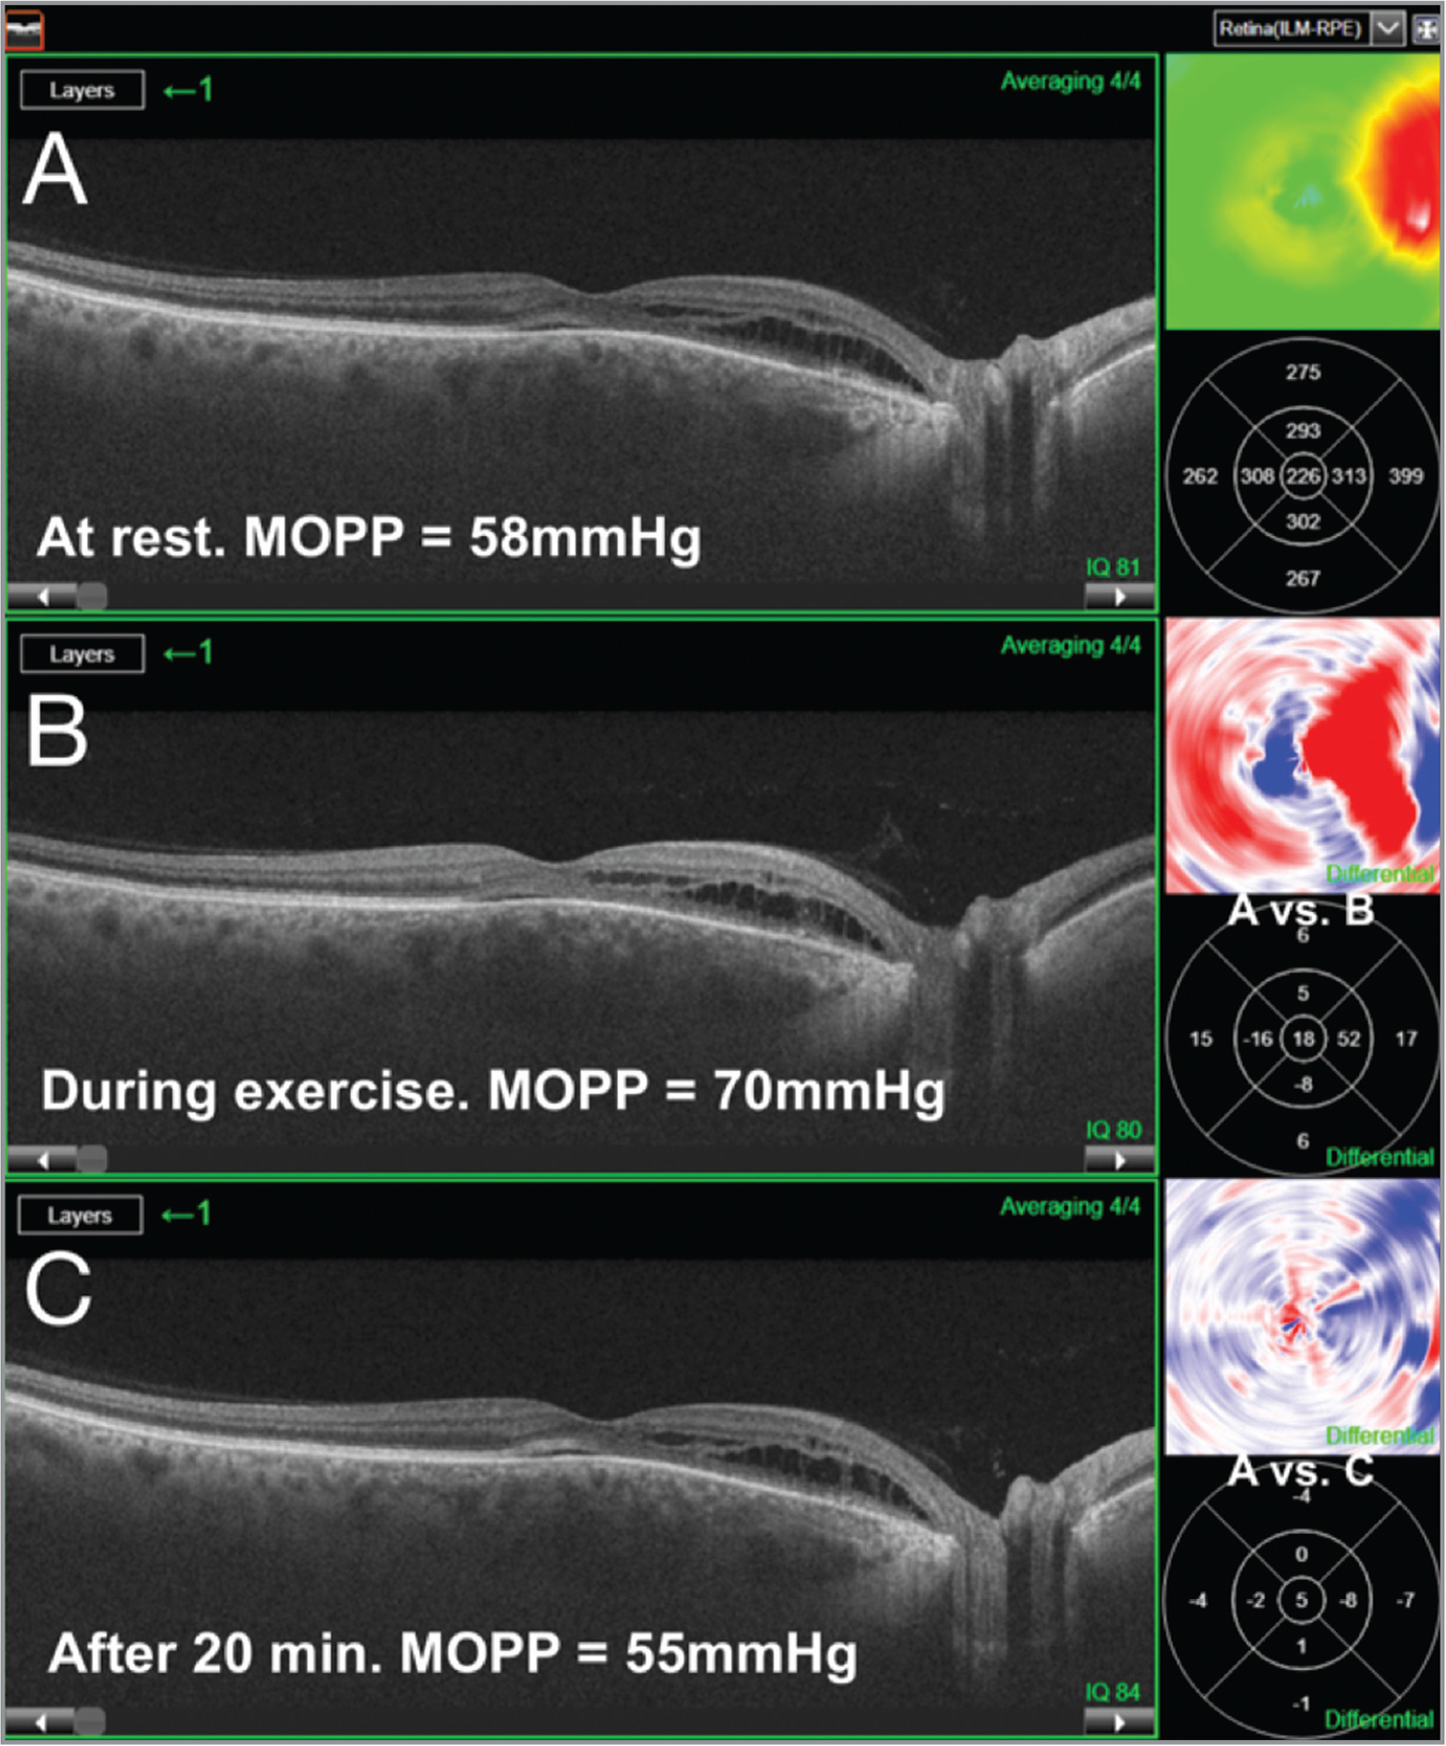 Retinal thickness before, during, and after the hand grip exercise. (A) Optical coherence tomography (OCT) scan and thickness map obtained at rest. (B) After 2 minutes of hand grip exercise, MOPP increase resulted in an increase of the retinal thickness as shown by the differential maps (A vs. B). (C) Retinal thickness returned to baseline values (differential maps show A vs C).MOPP: mean ocular perfusion pressure = 2/3 (mean arterial pressure − intraocular pressure), where mean arterial pressure = diastolic blood pressure + 1/3 (systolic blood pressure − diastolic blood pressure). The patient was asked to maintain 30% of his maximum hand grip strain for 2 minutes and for the duration of the OCT scans. We used the radial scan pattern centered on the fovea with a 12-mm length for each scan. Automatic segmentation was always reviewed to avoid and correct for segmentation errors.